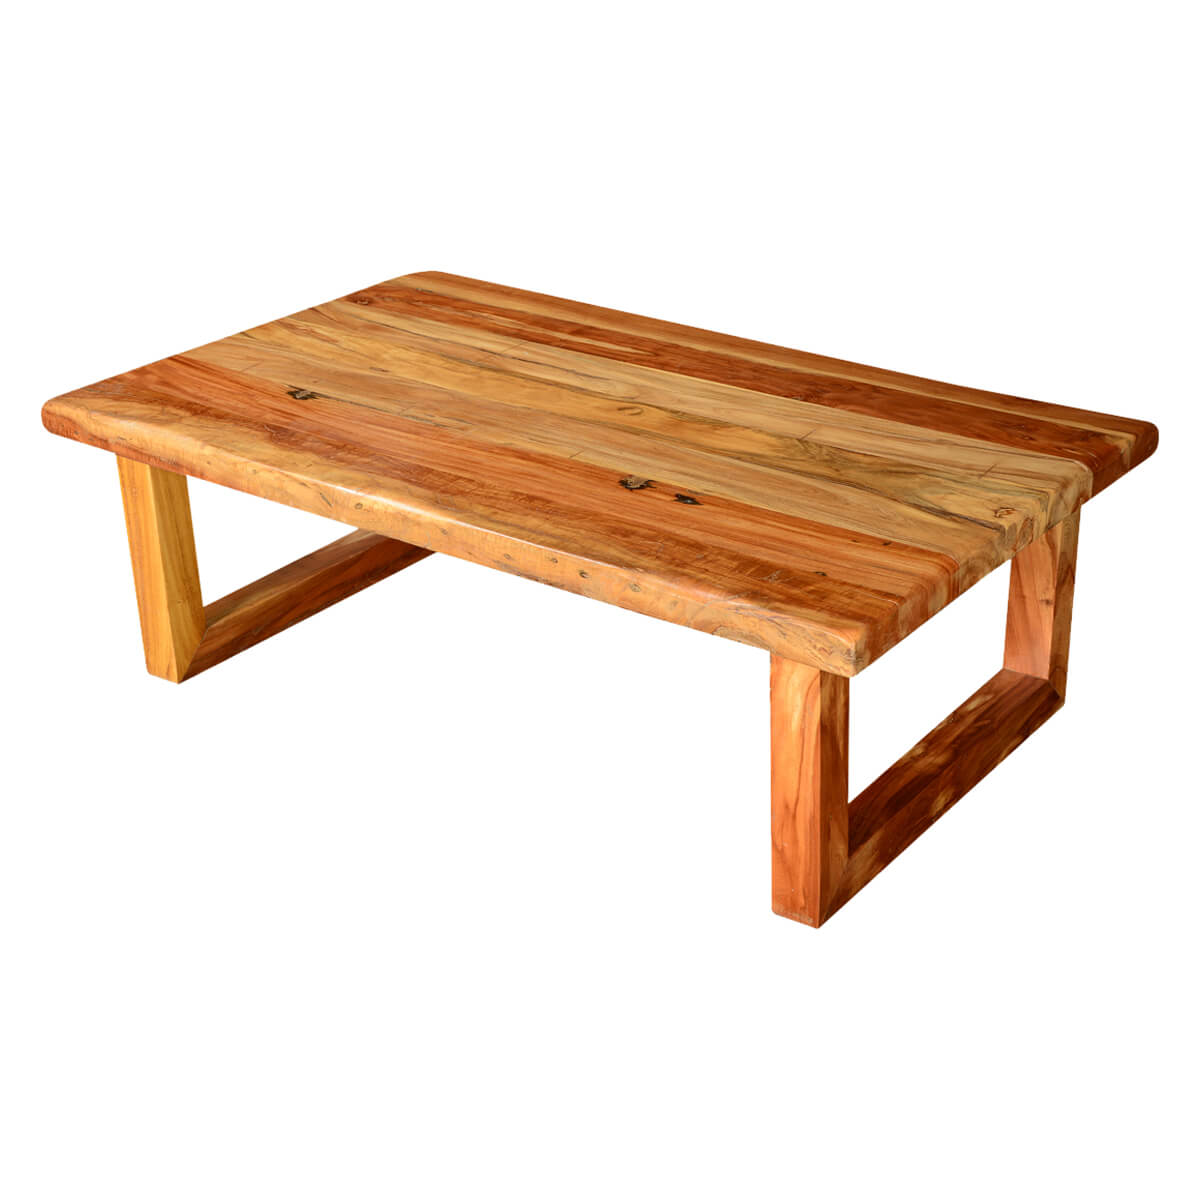 Modern rustic simplicity acacia wood 51quot coffee table for Coffee table wood